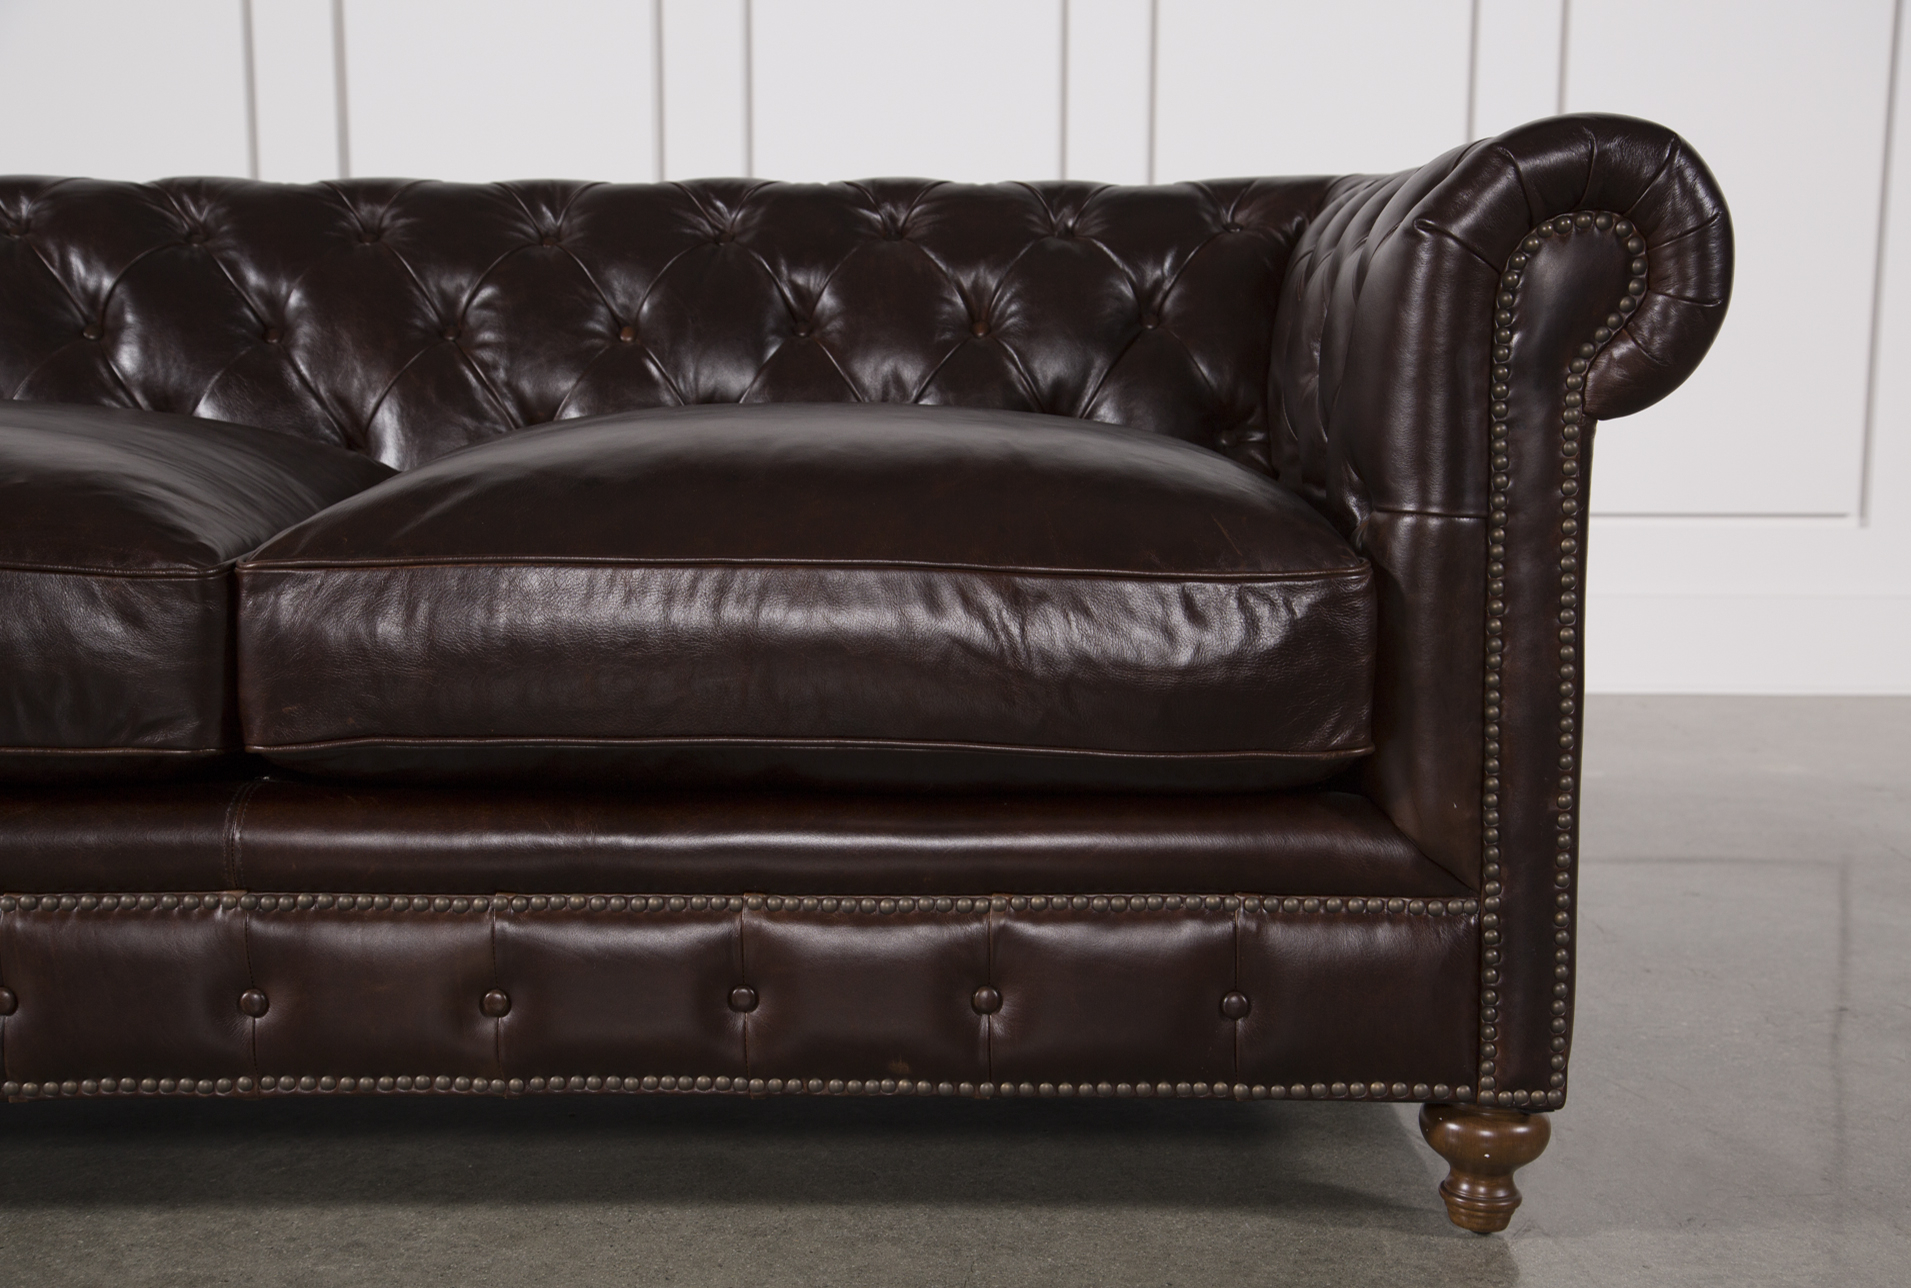 Mansfield 86 Inch Cocoa Leather Sofa In 2018 | Products | Pinterest Throughout Mansfield Cocoa Leather Sofa Chairs (Photo 2 of 20)